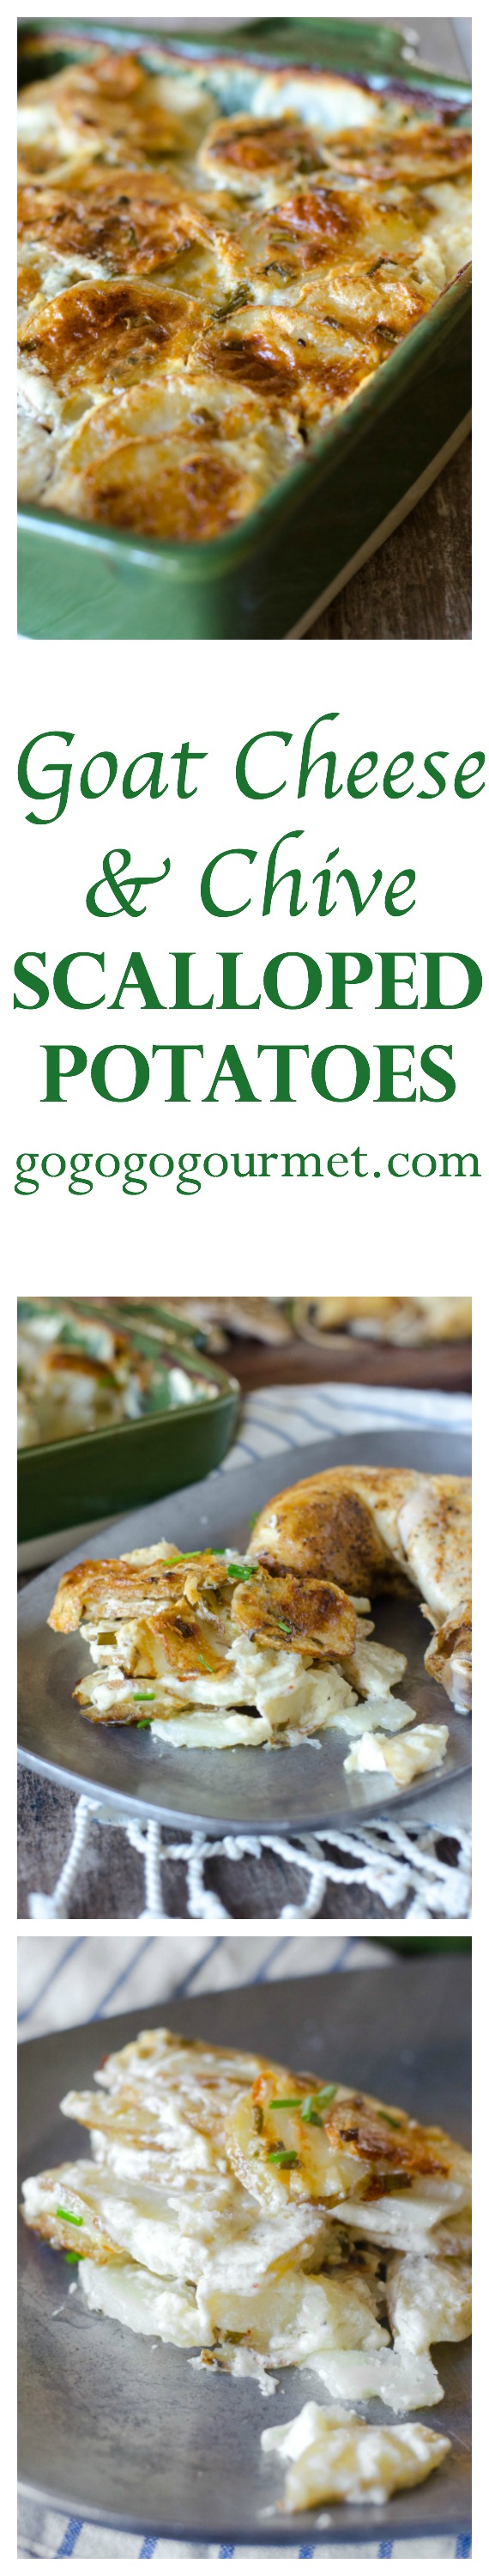 These Goat Cheese & Chive Potatoes are incredibly creamy AND easy to make! | Go Go Go Gourmet @Go Go Go Gourmet via @gogogogourmet